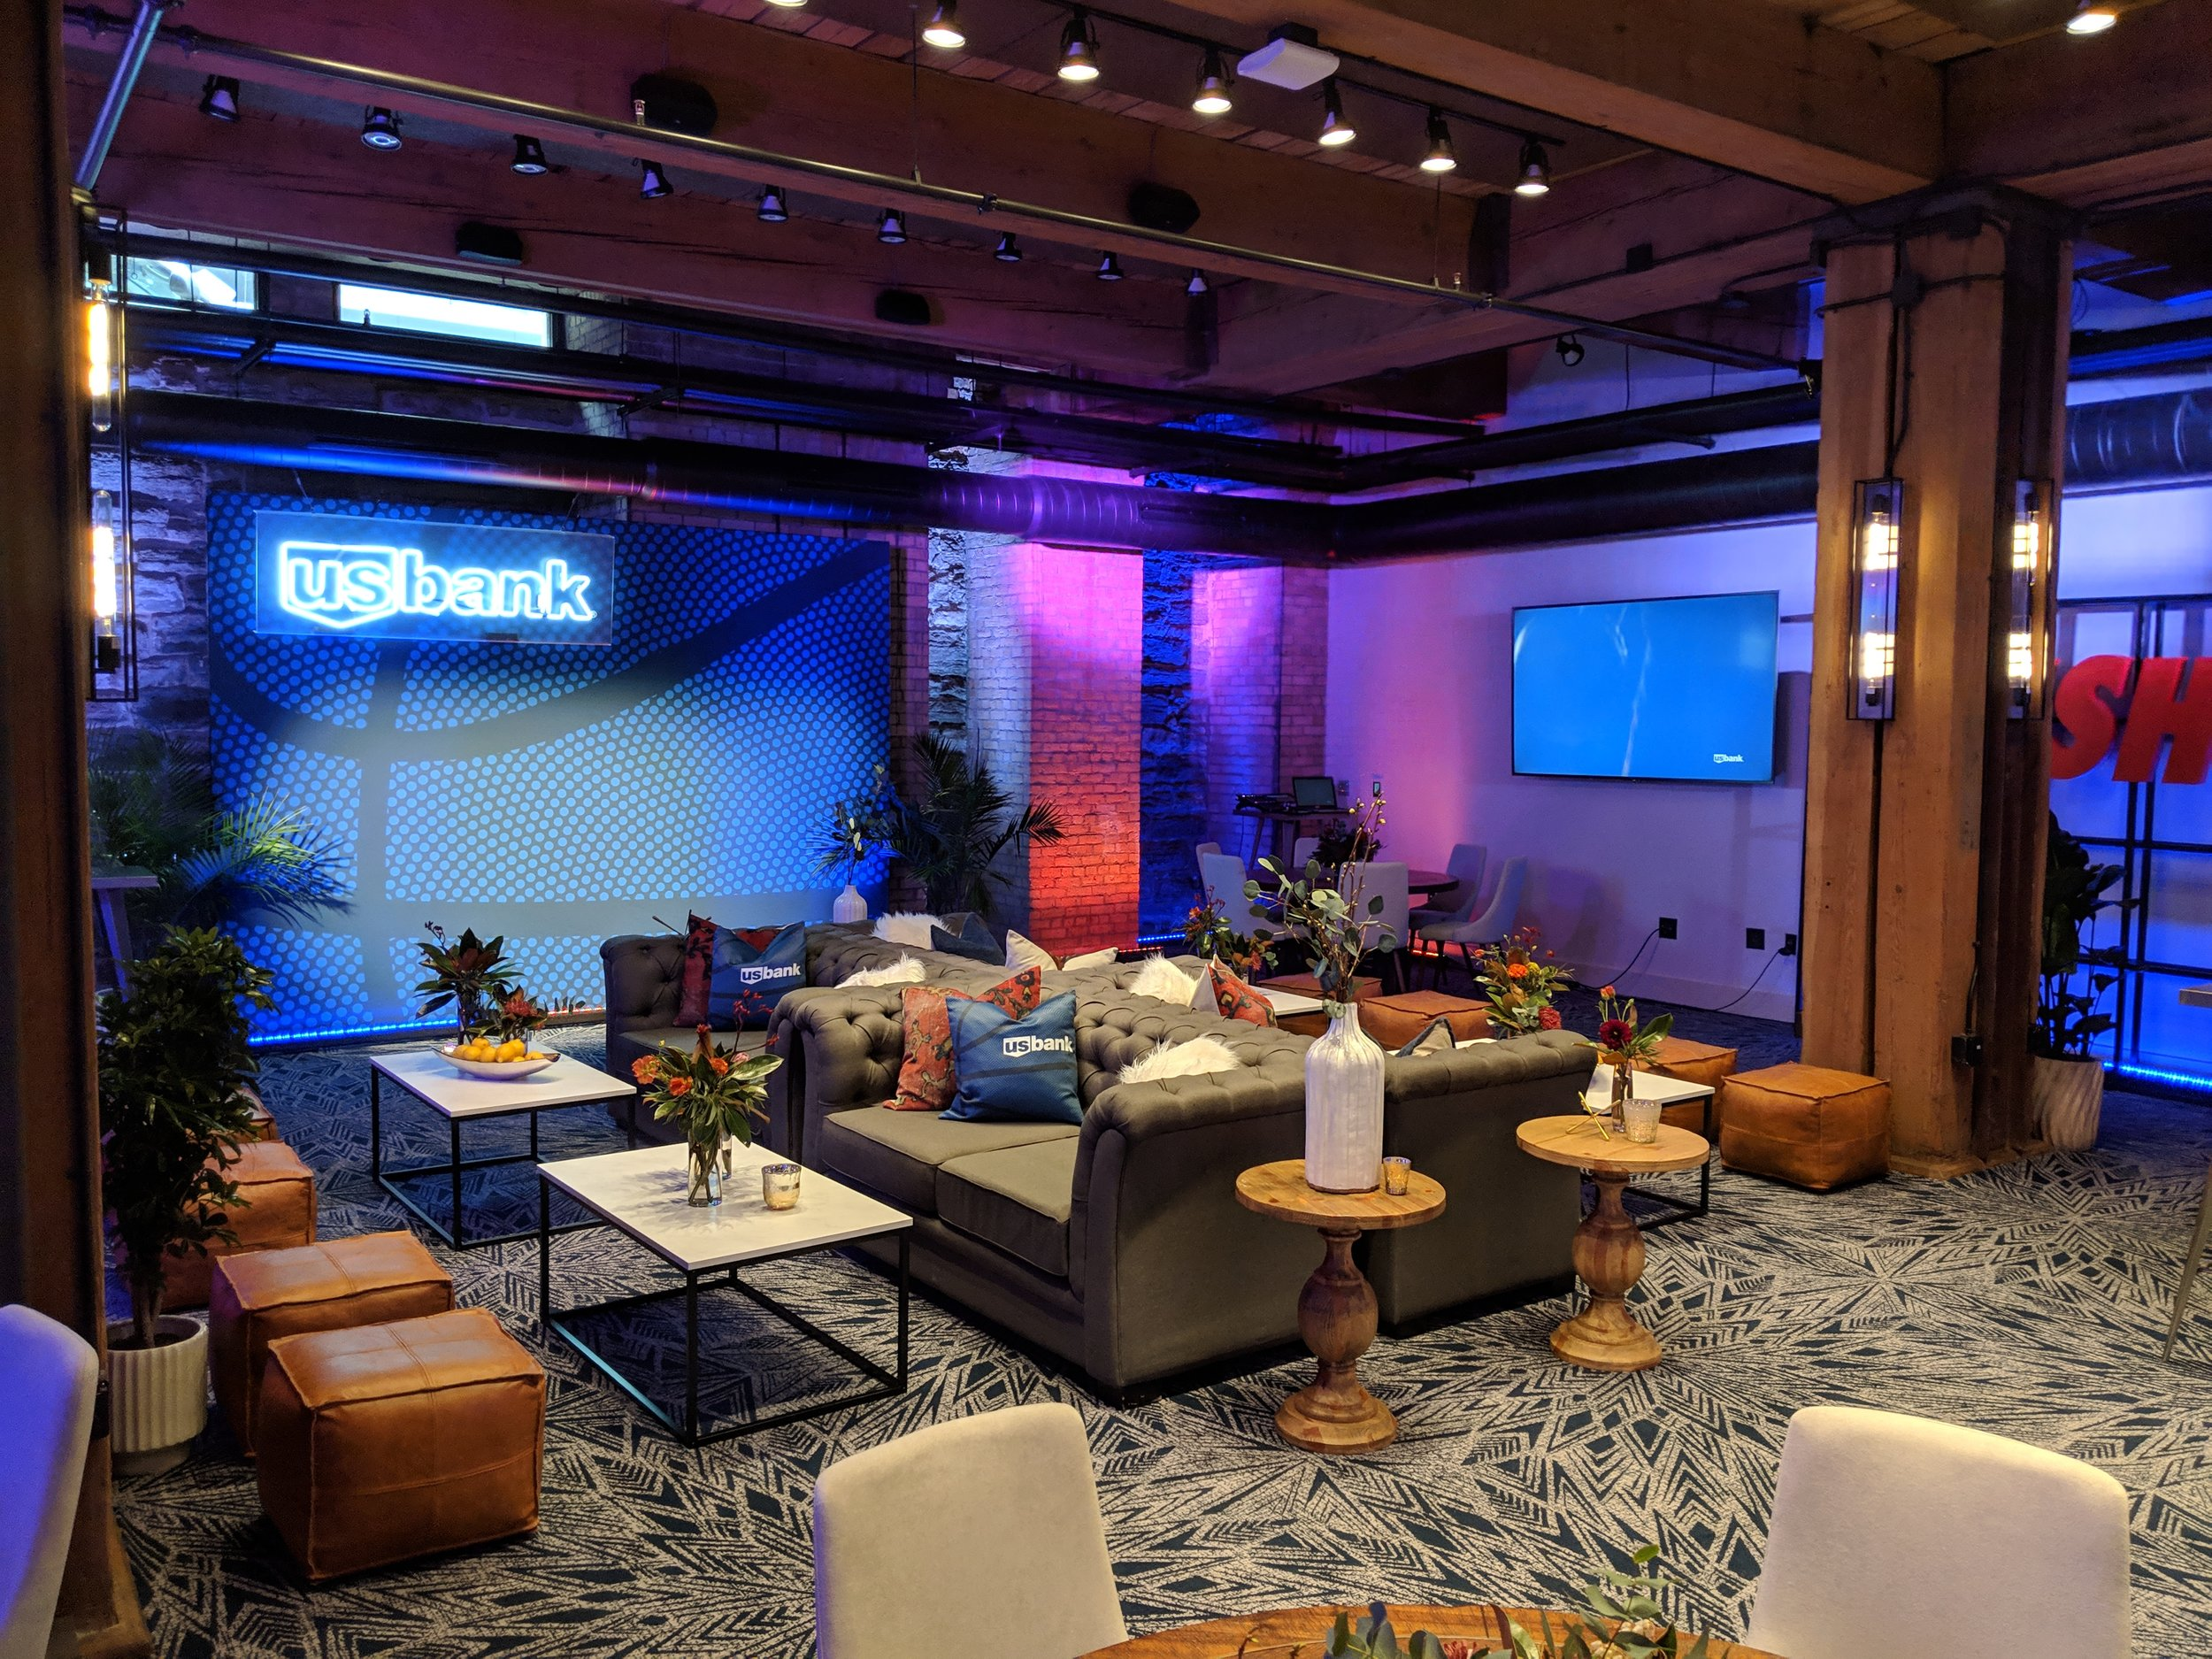 Picture of AV for You Rental Equipment at Canopy Hotel in Minneapolis